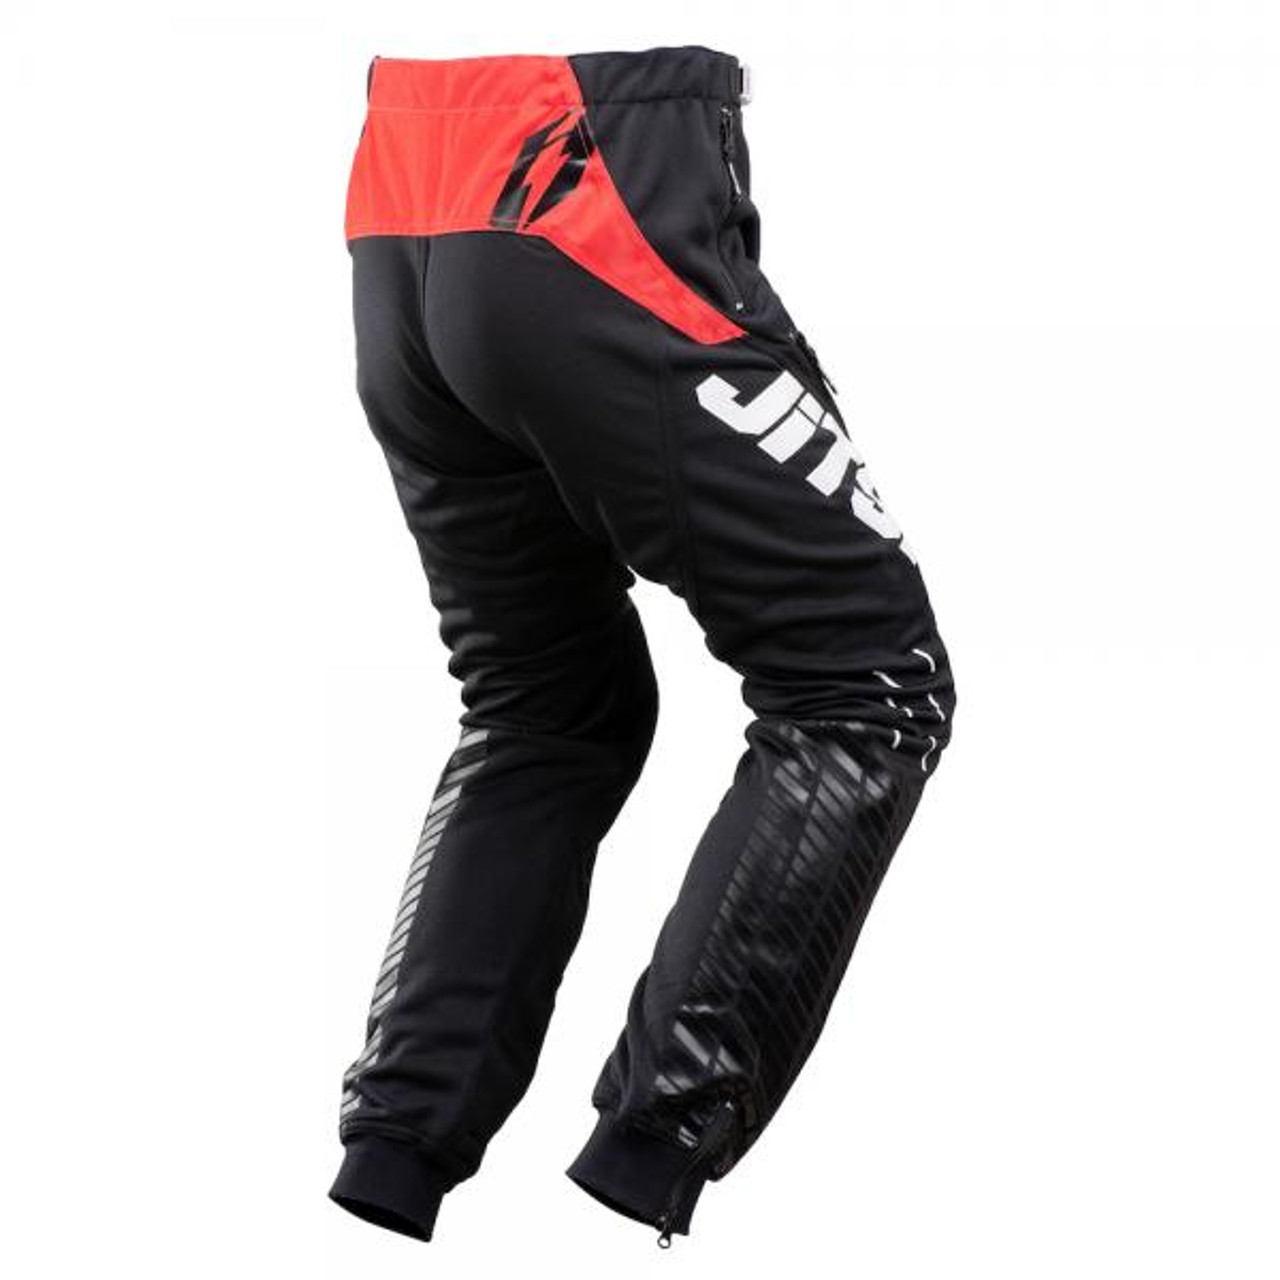 Pants 01 Omnia, black/ red